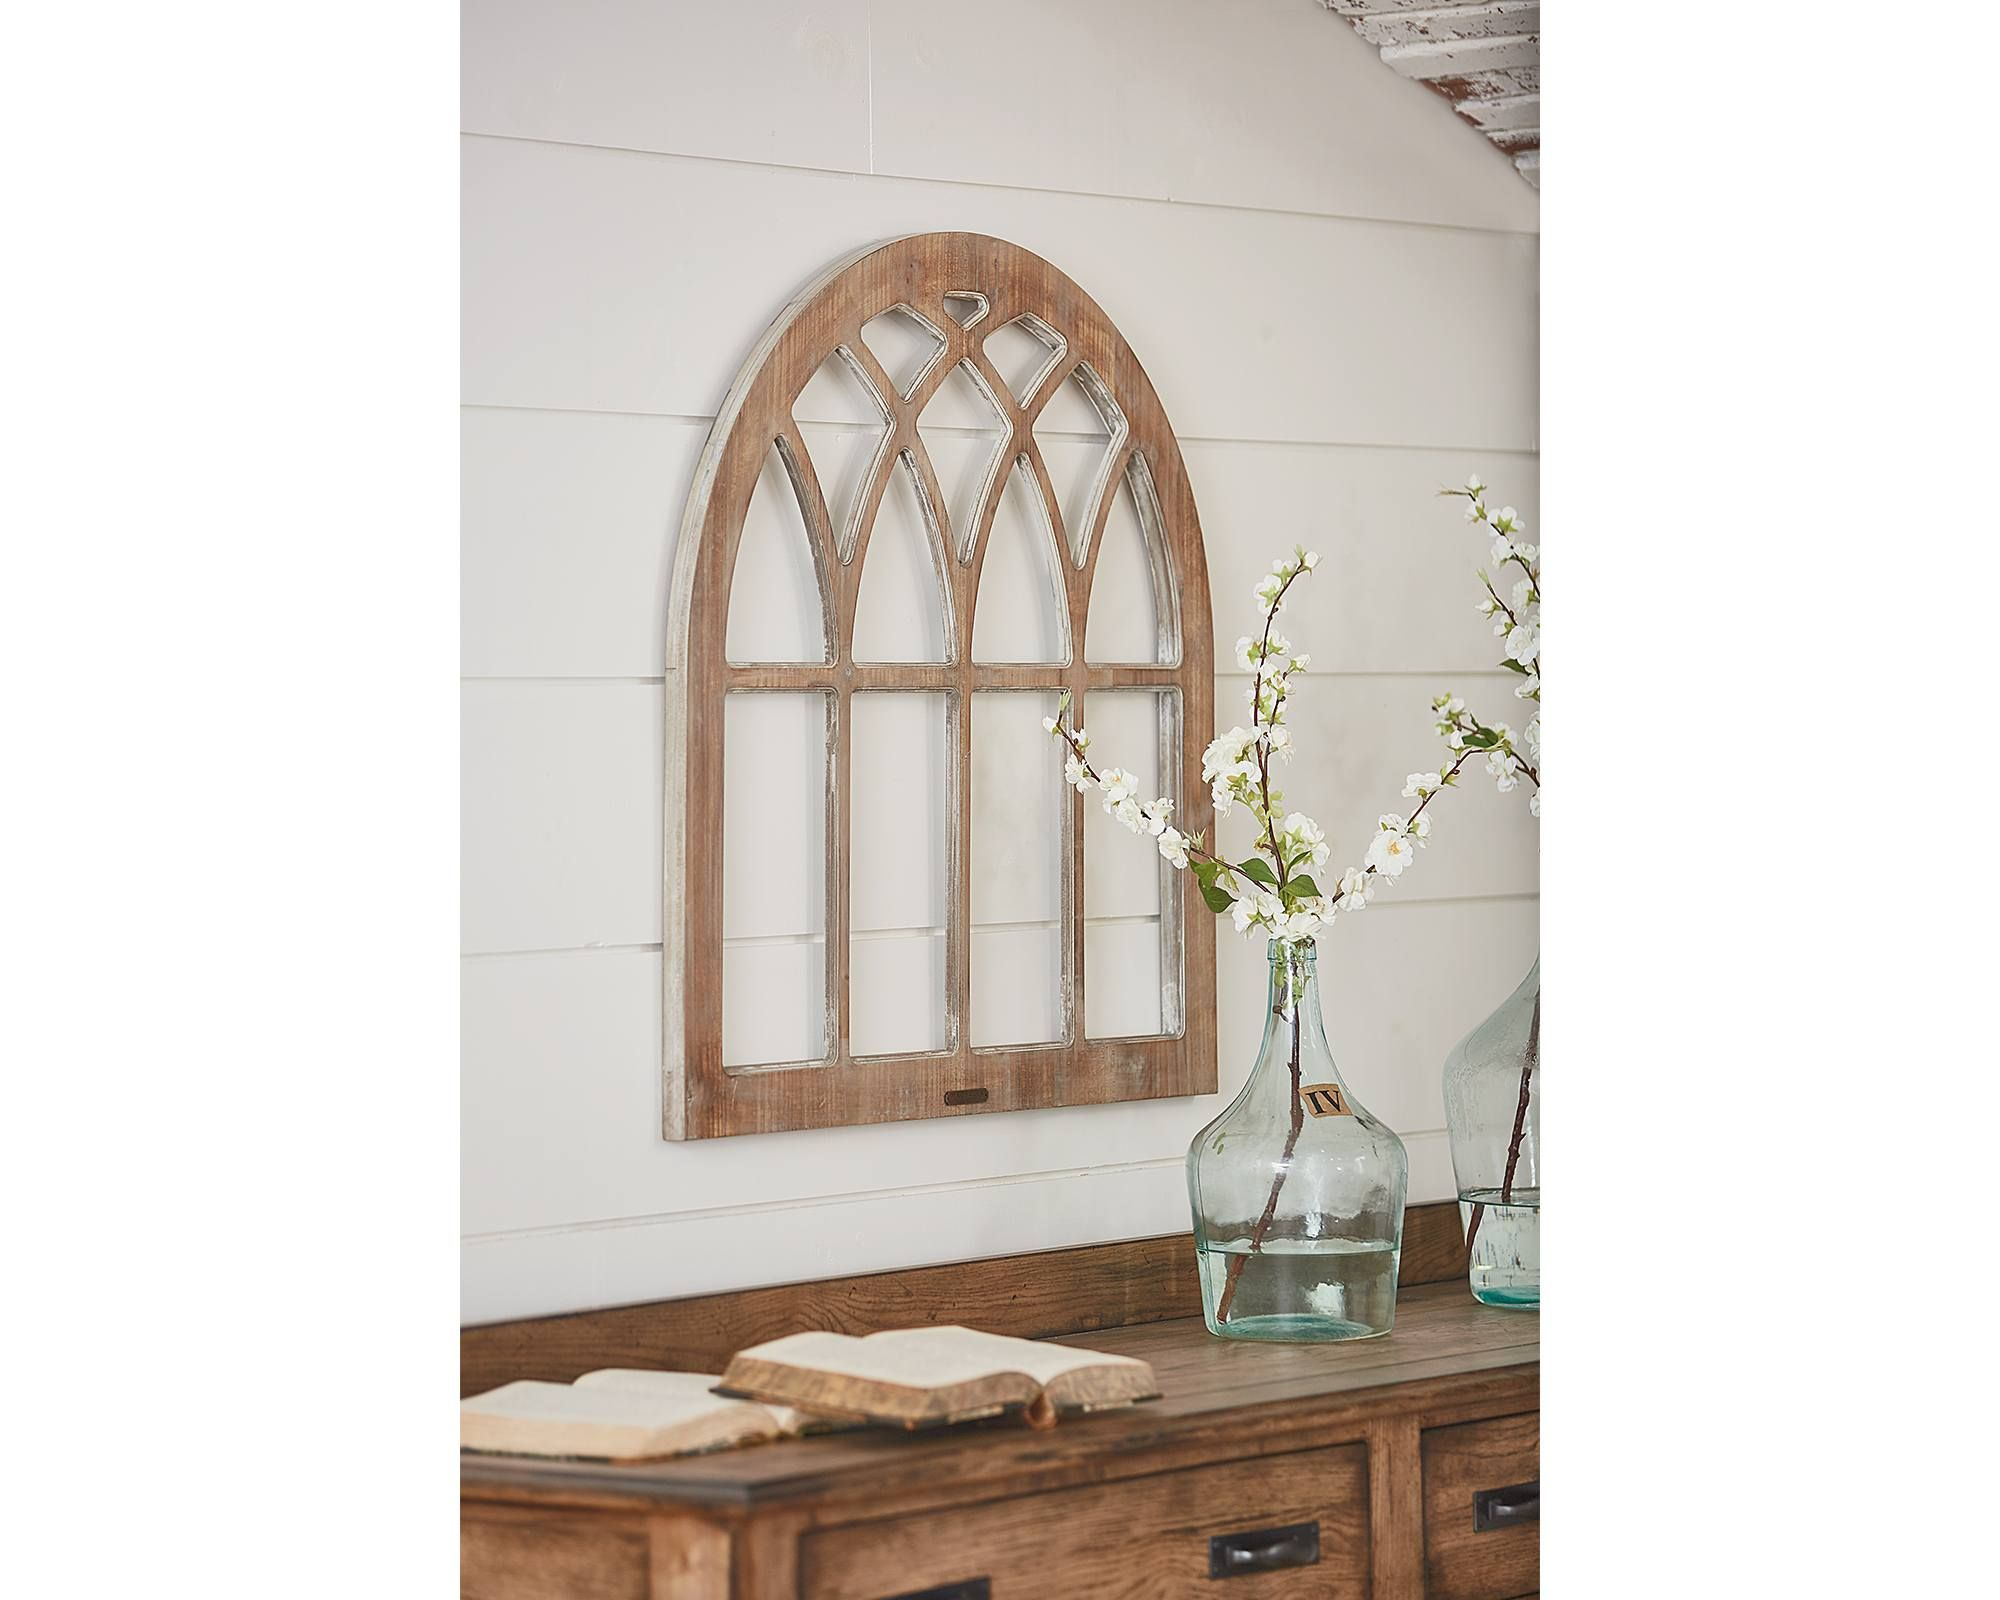 Cathedral window frame wall decor magnolia home ideas